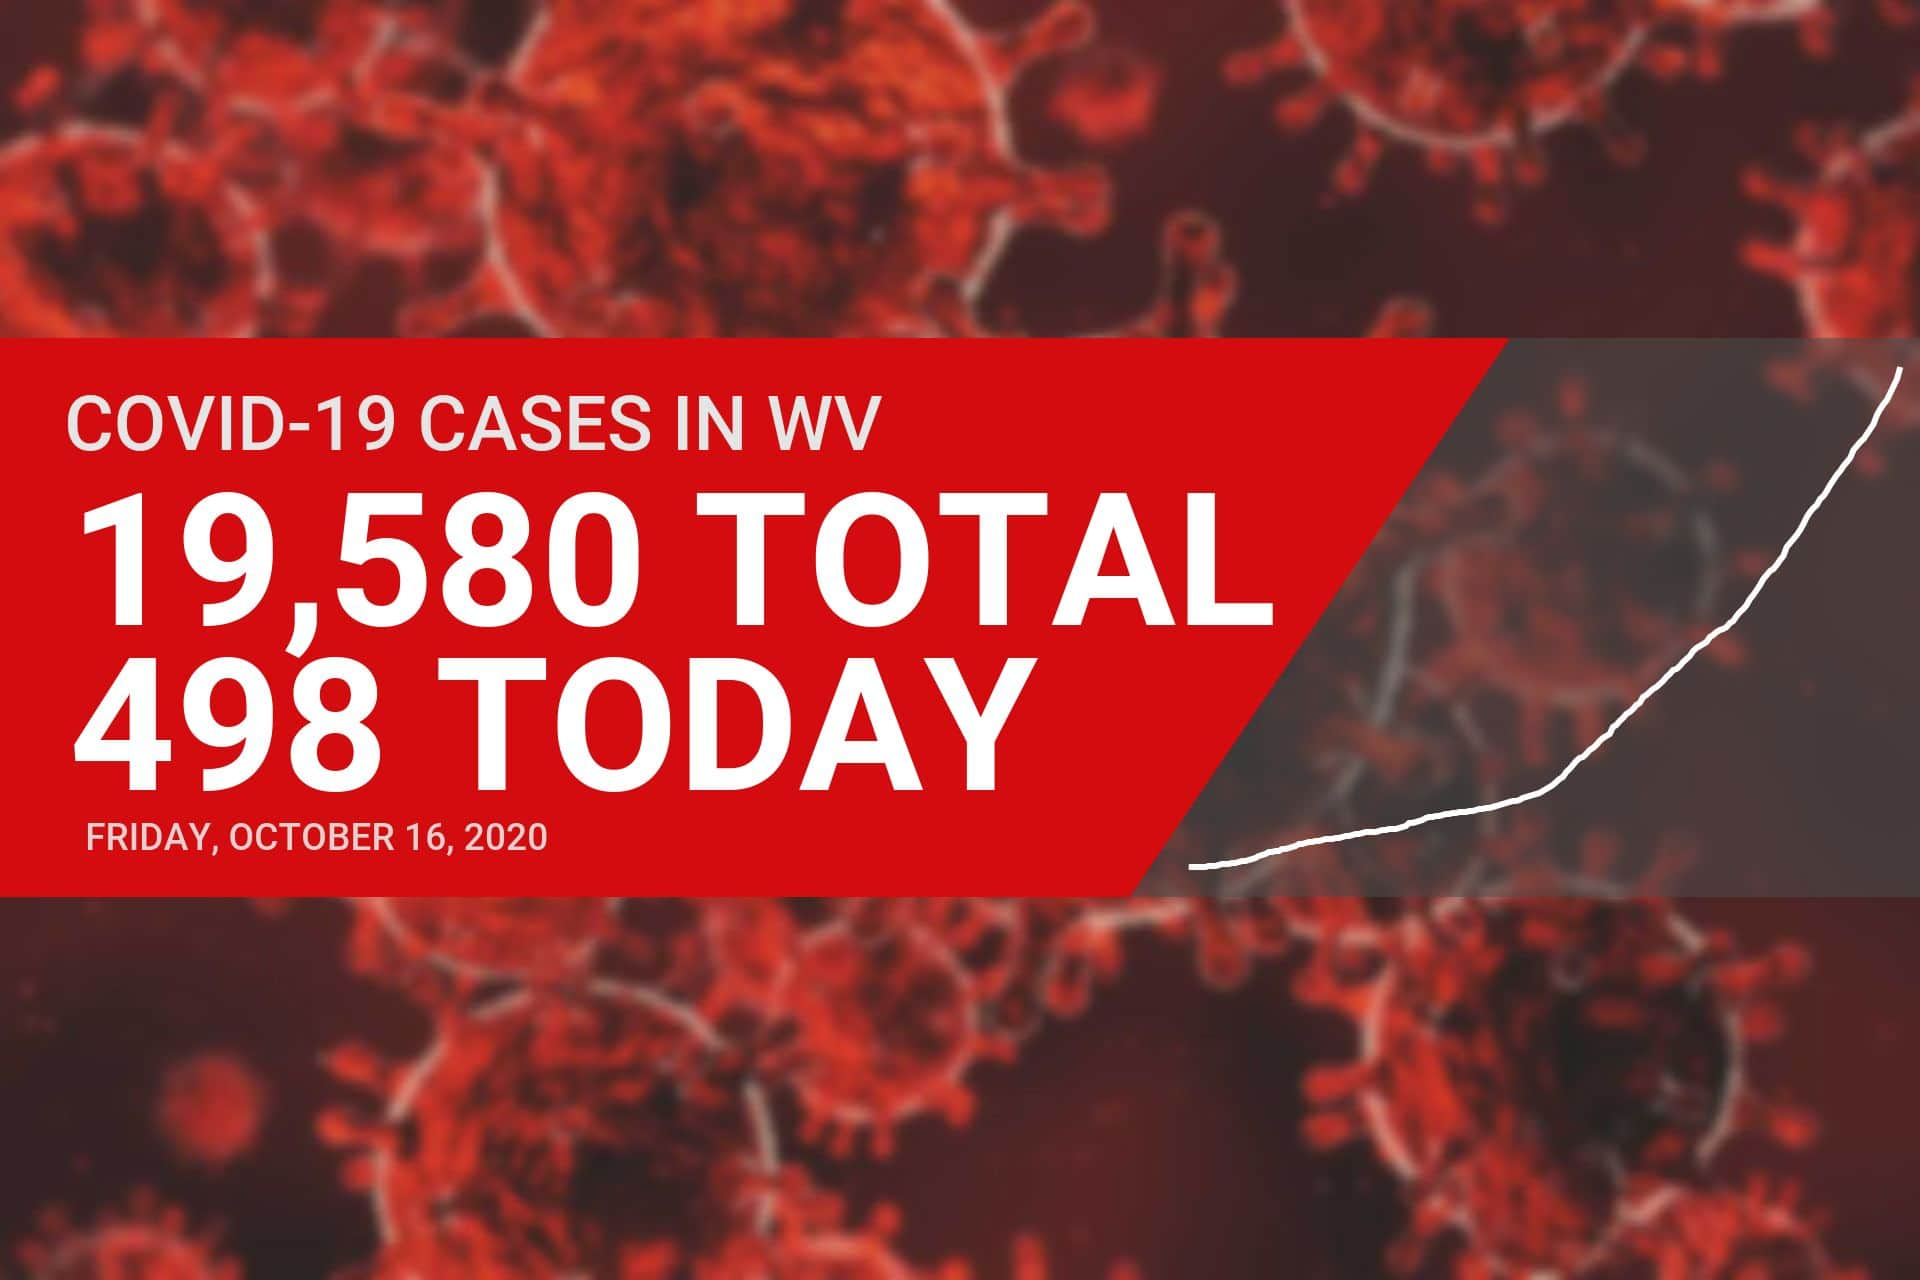 West Virginia reports record 498 new COVID-19 cases on Friday, including seven in Upshur County